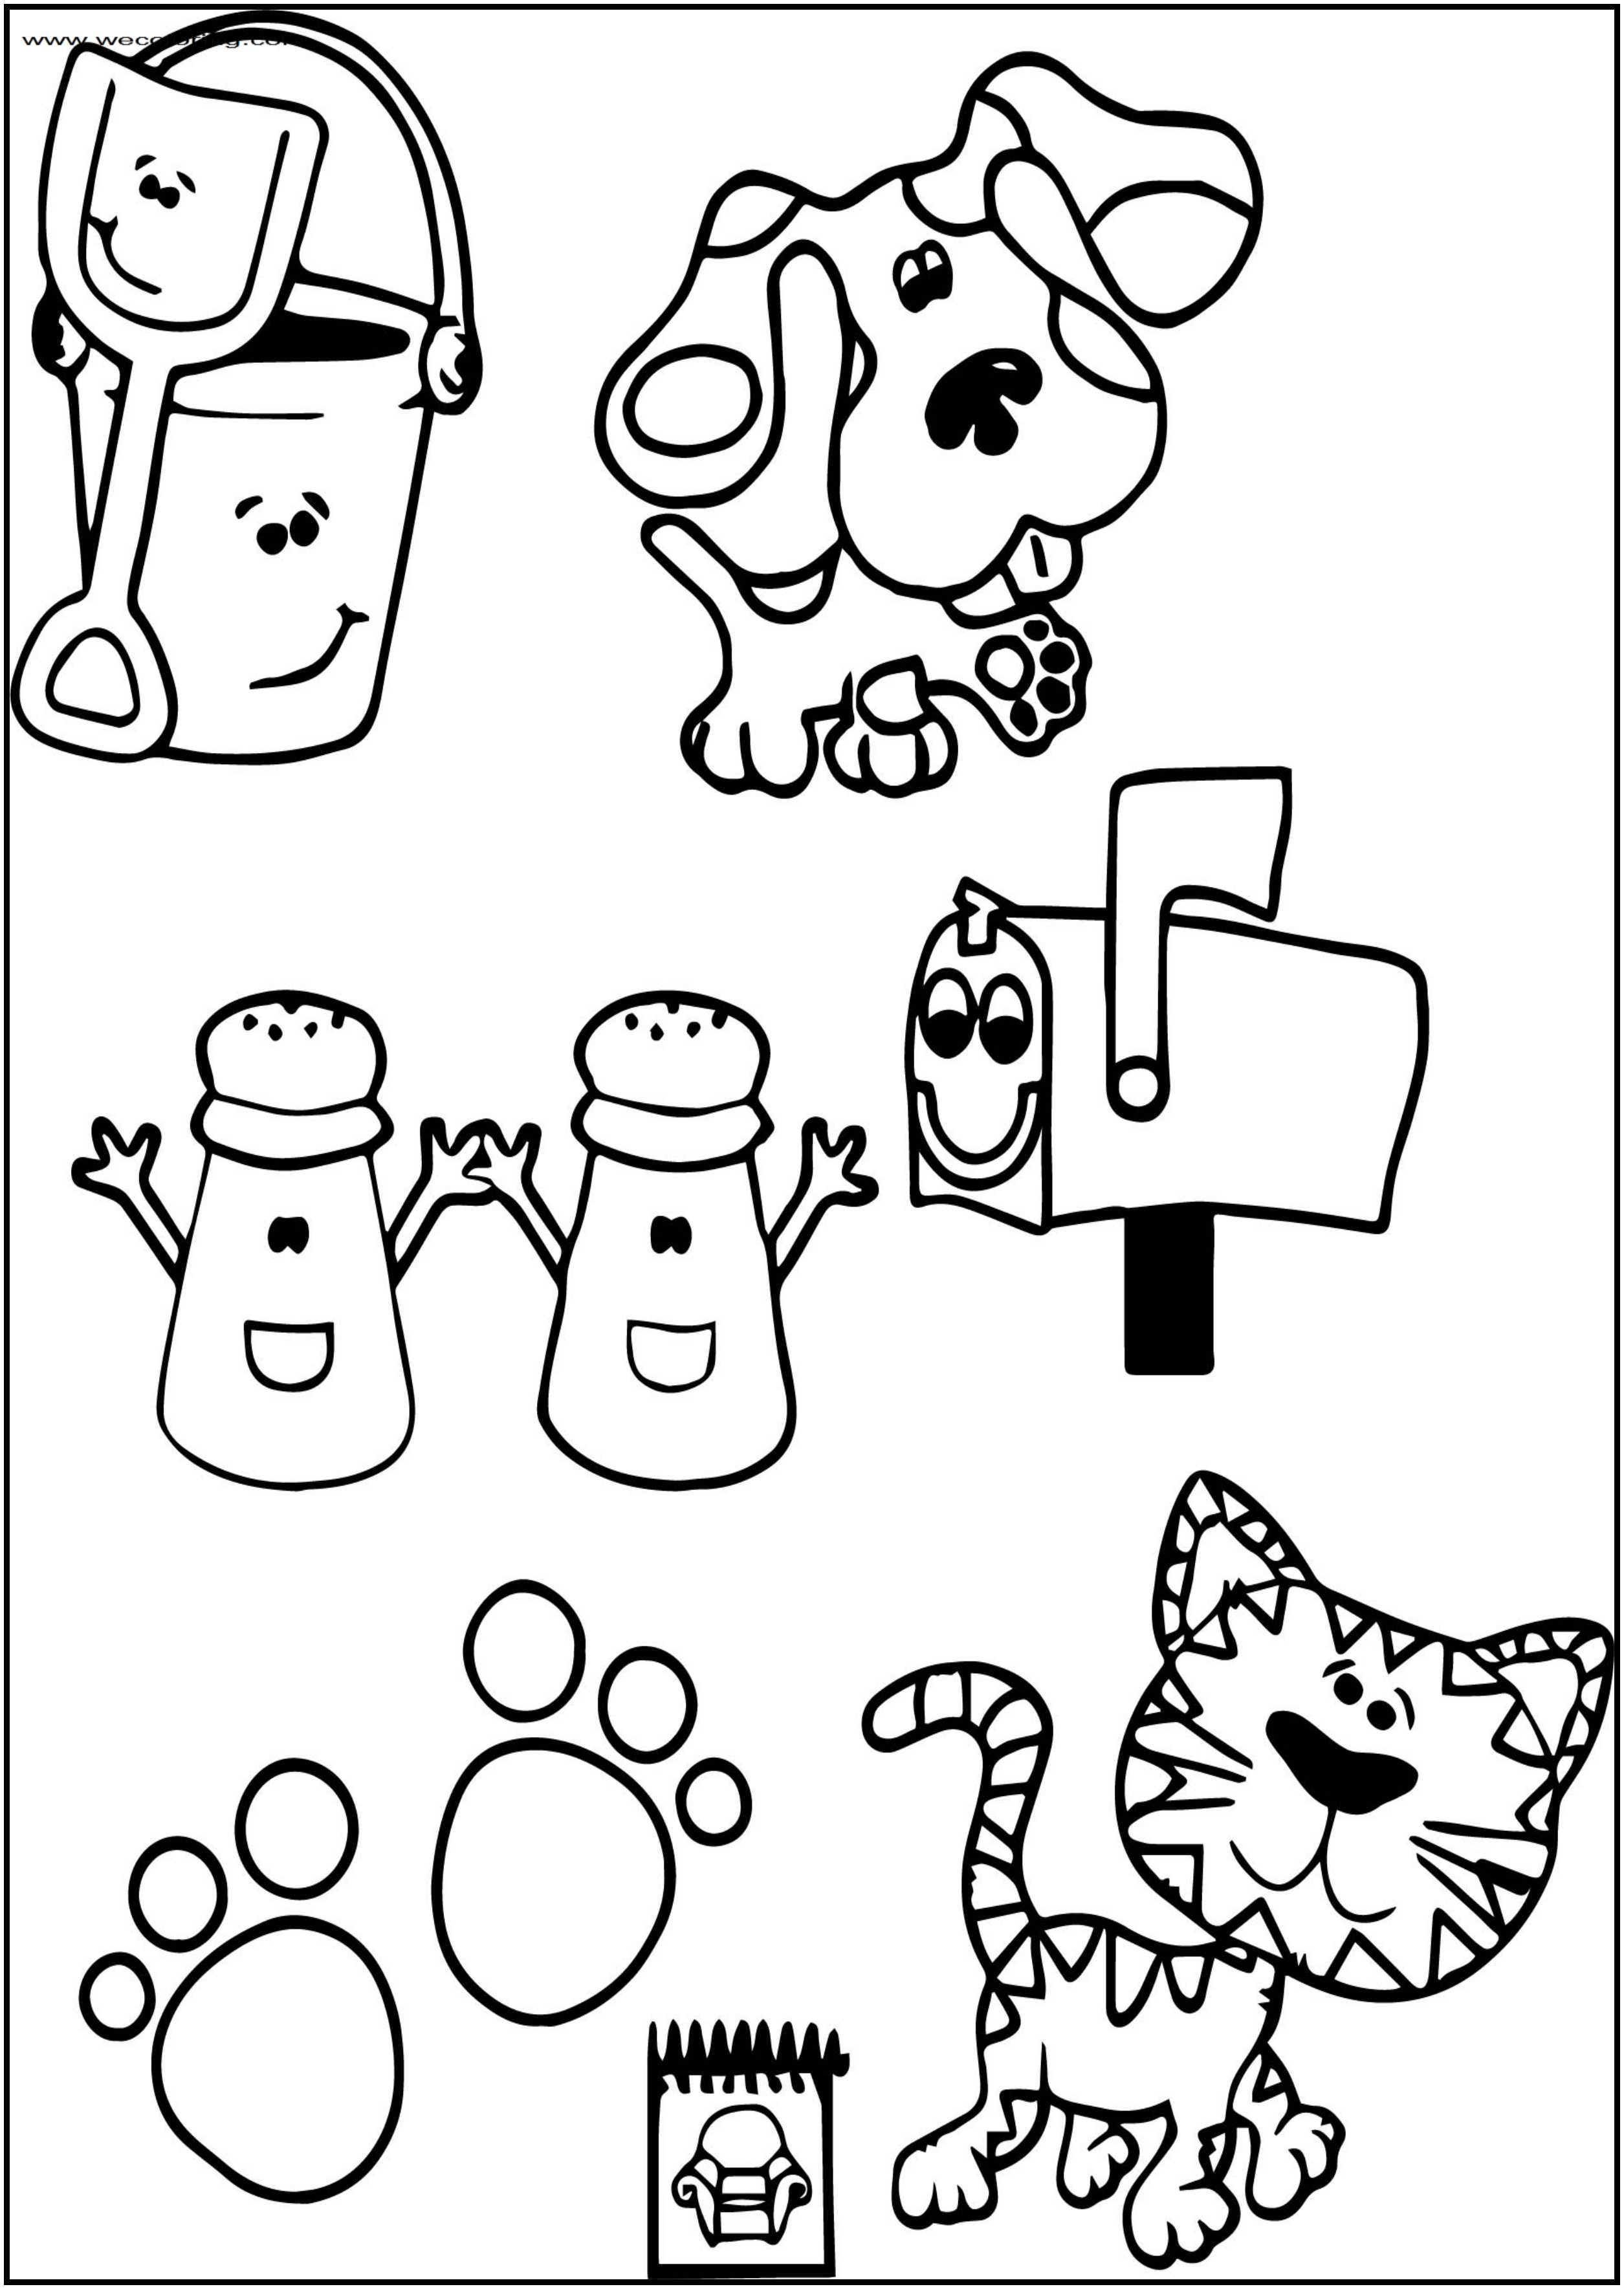 blues clues coloring pages awesome blue39s clues man coloring page coloring pages pages clues coloring blues